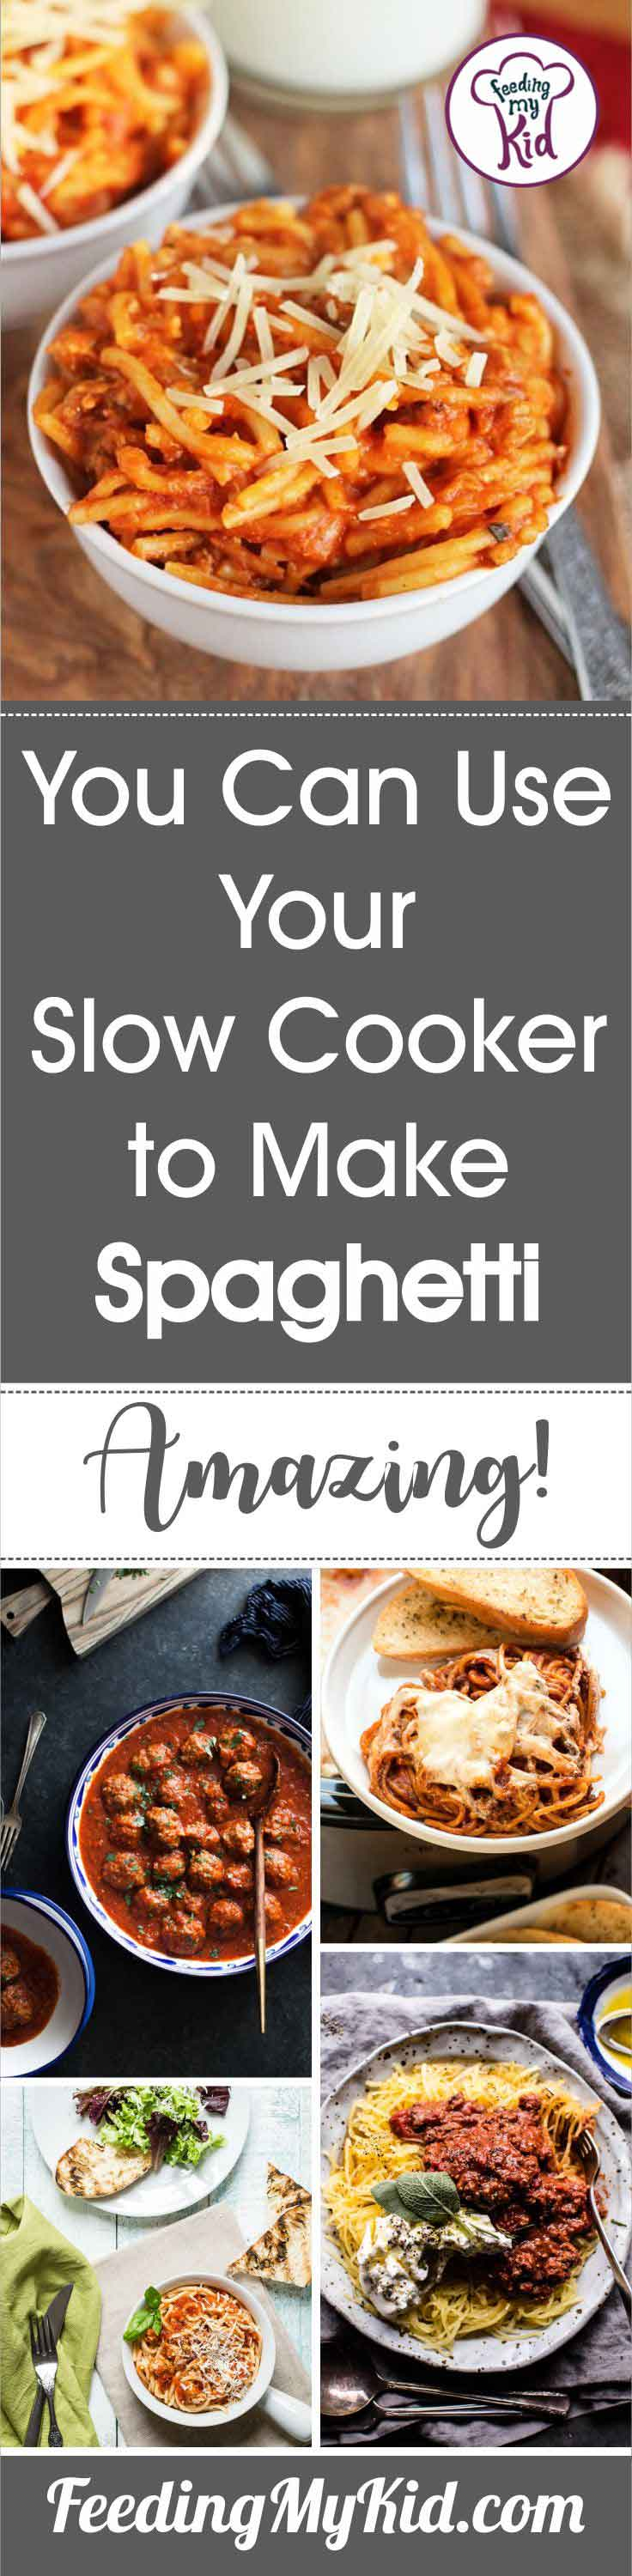 Did you know you can use your crock pot to make a spaghetti dinner? Amazing! These crock pot spaghetti recipes are perfect for weeknights.